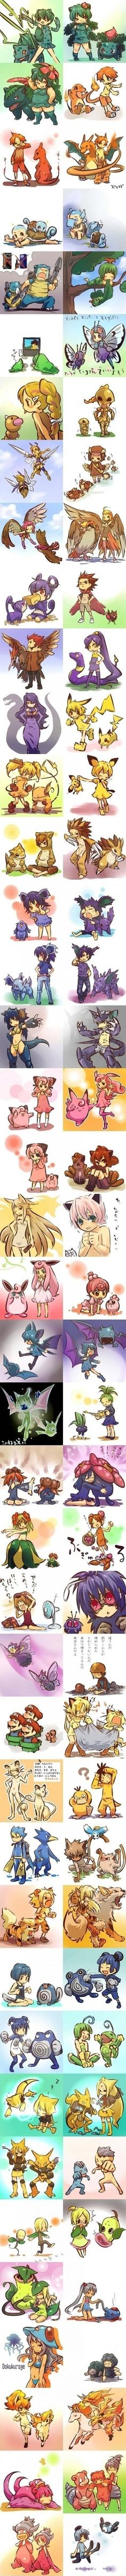 I'm not into pokemon all the much but these are super cute!  Pokéhumans. Pretty good art work